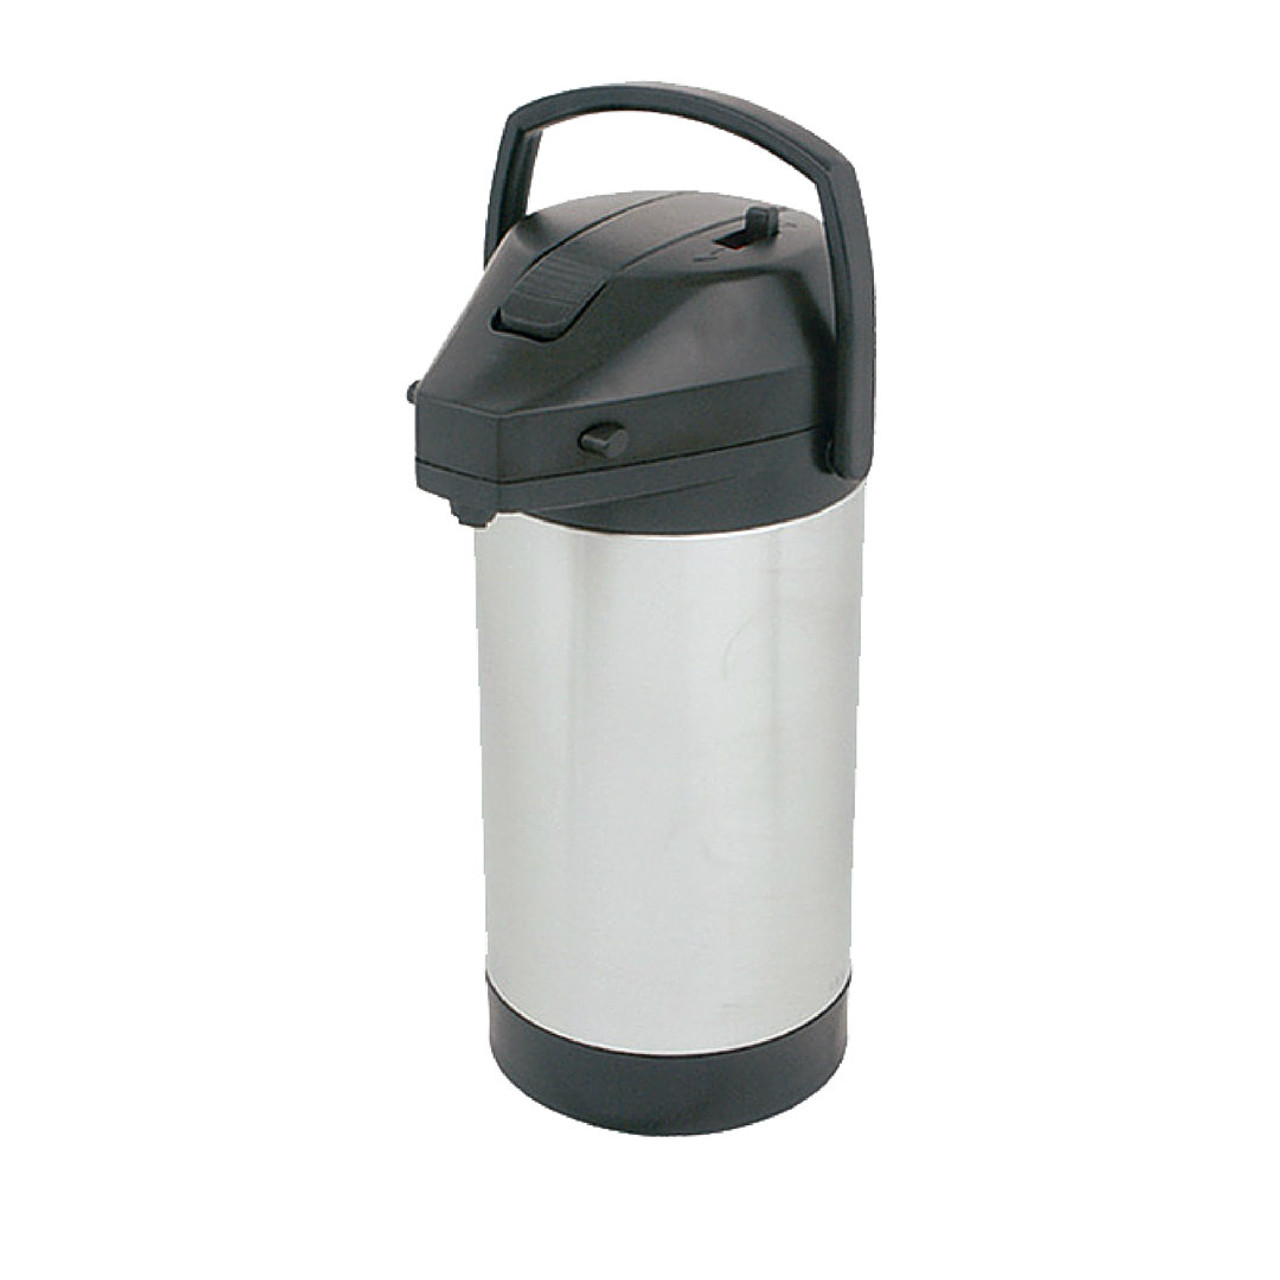 Fetco Lever Airpot 3.0 Liter SS Lined